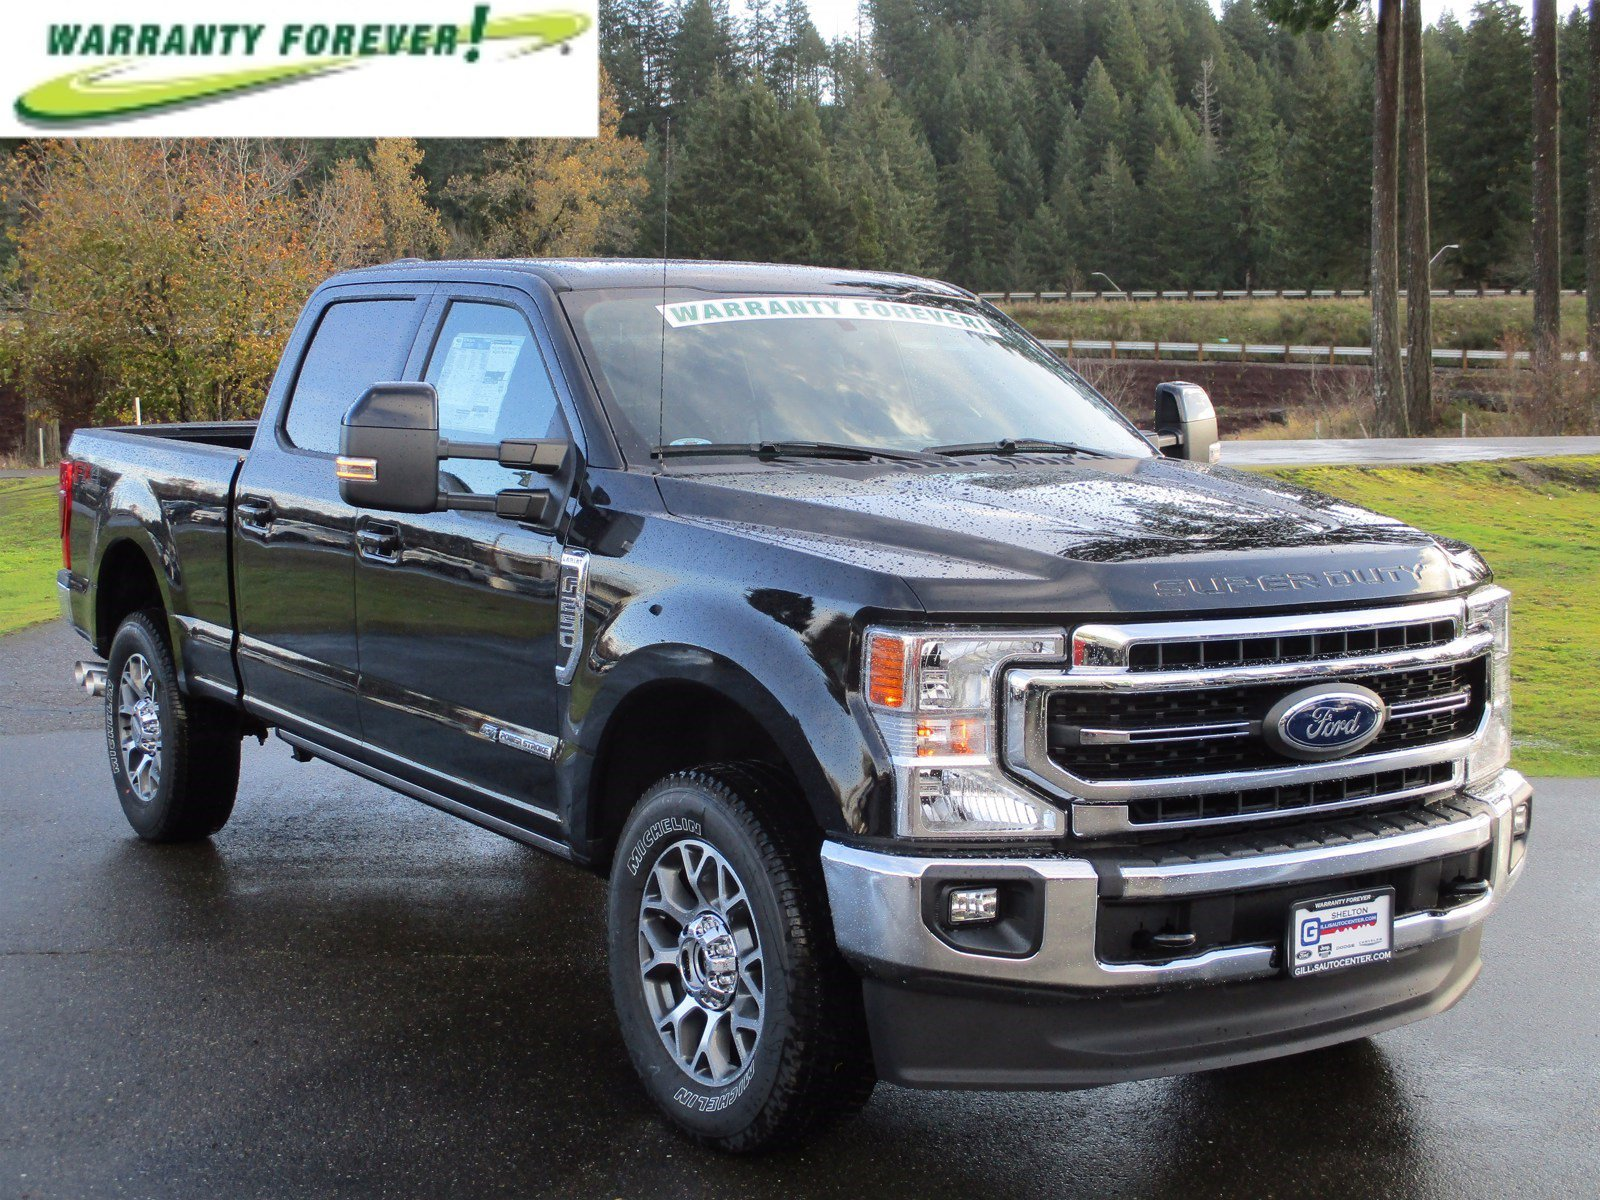 New-2020-Ford-Super-Duty-F-250-SRW-LARIAT-4WD-Crew-Cab-675'-Box